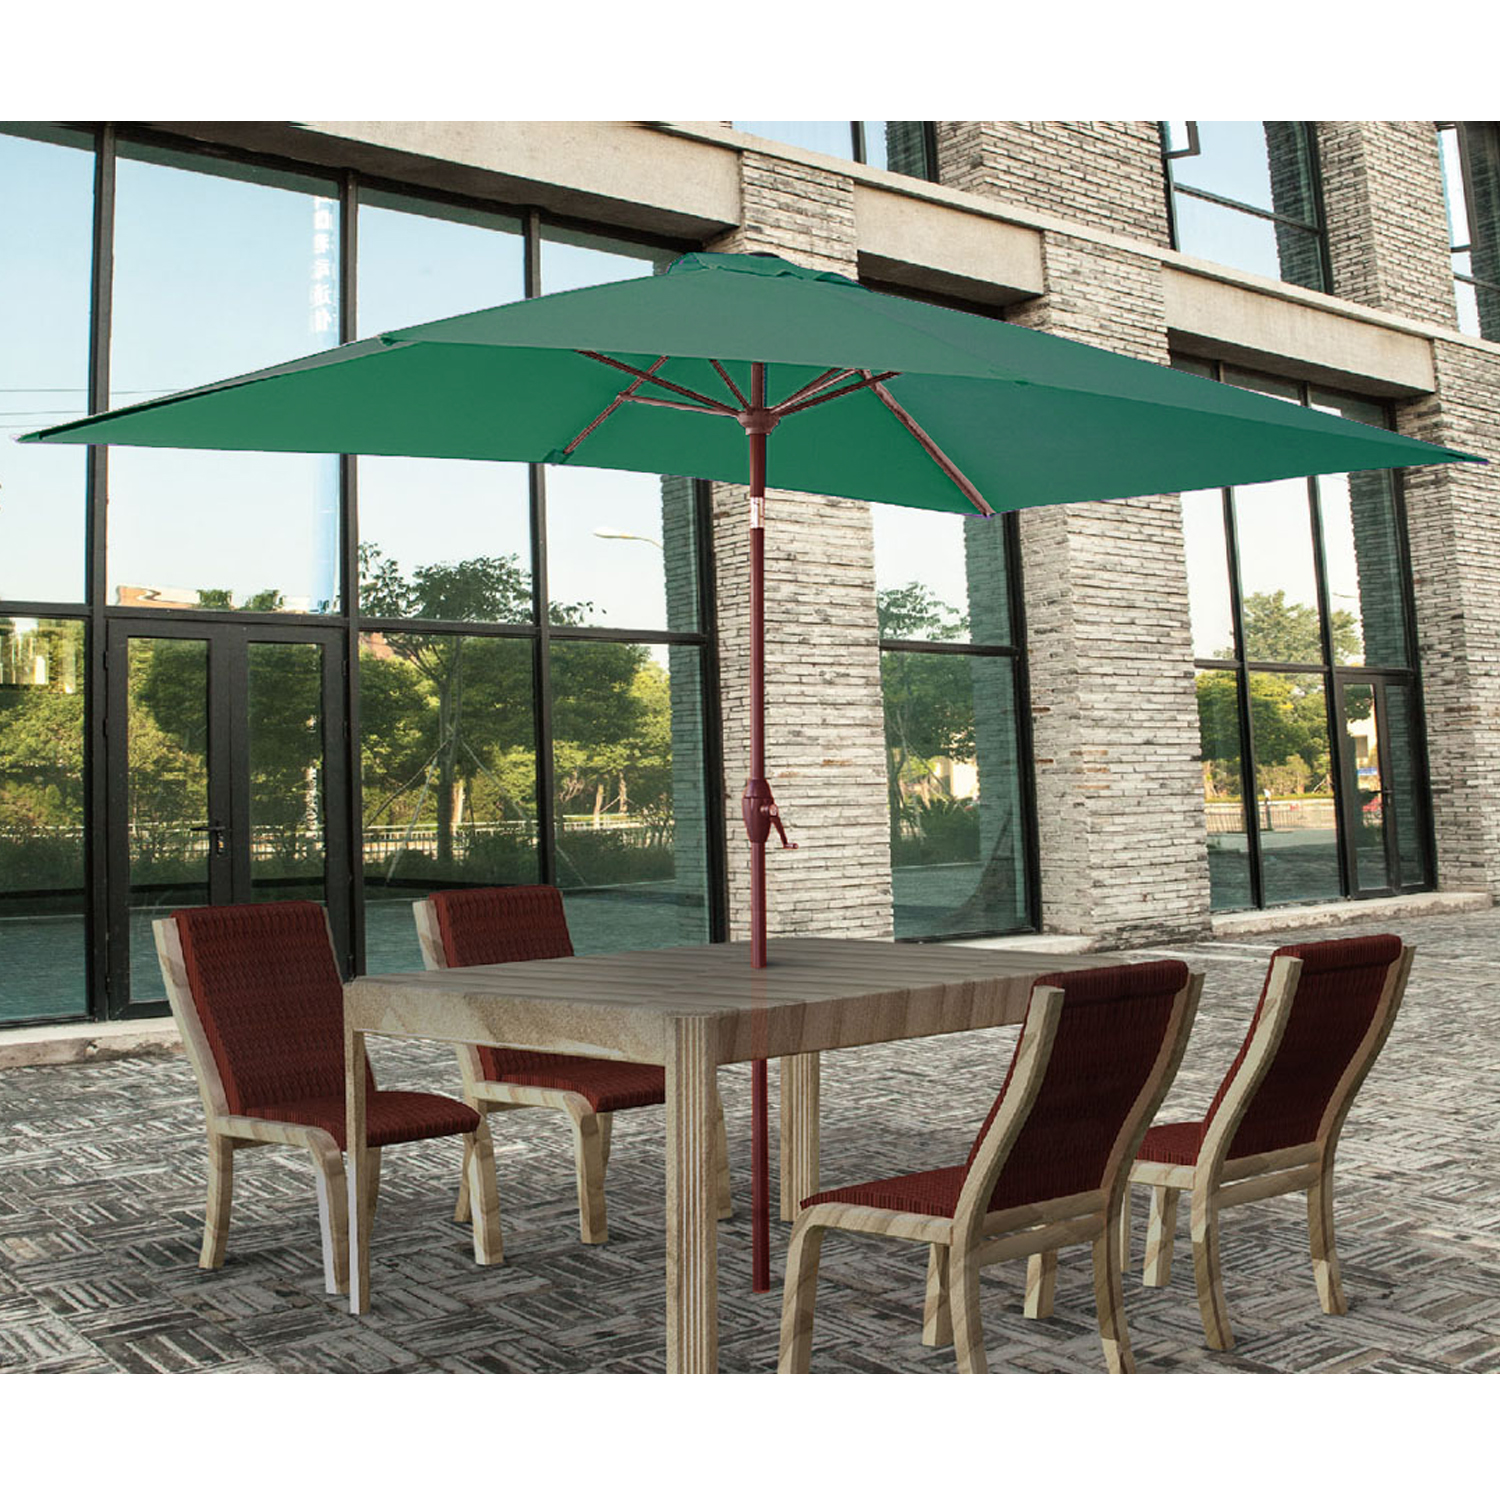 2x3m rectangle garden parasol umbrella patio sun shade aluminium crank tilt ebay. Black Bedroom Furniture Sets. Home Design Ideas